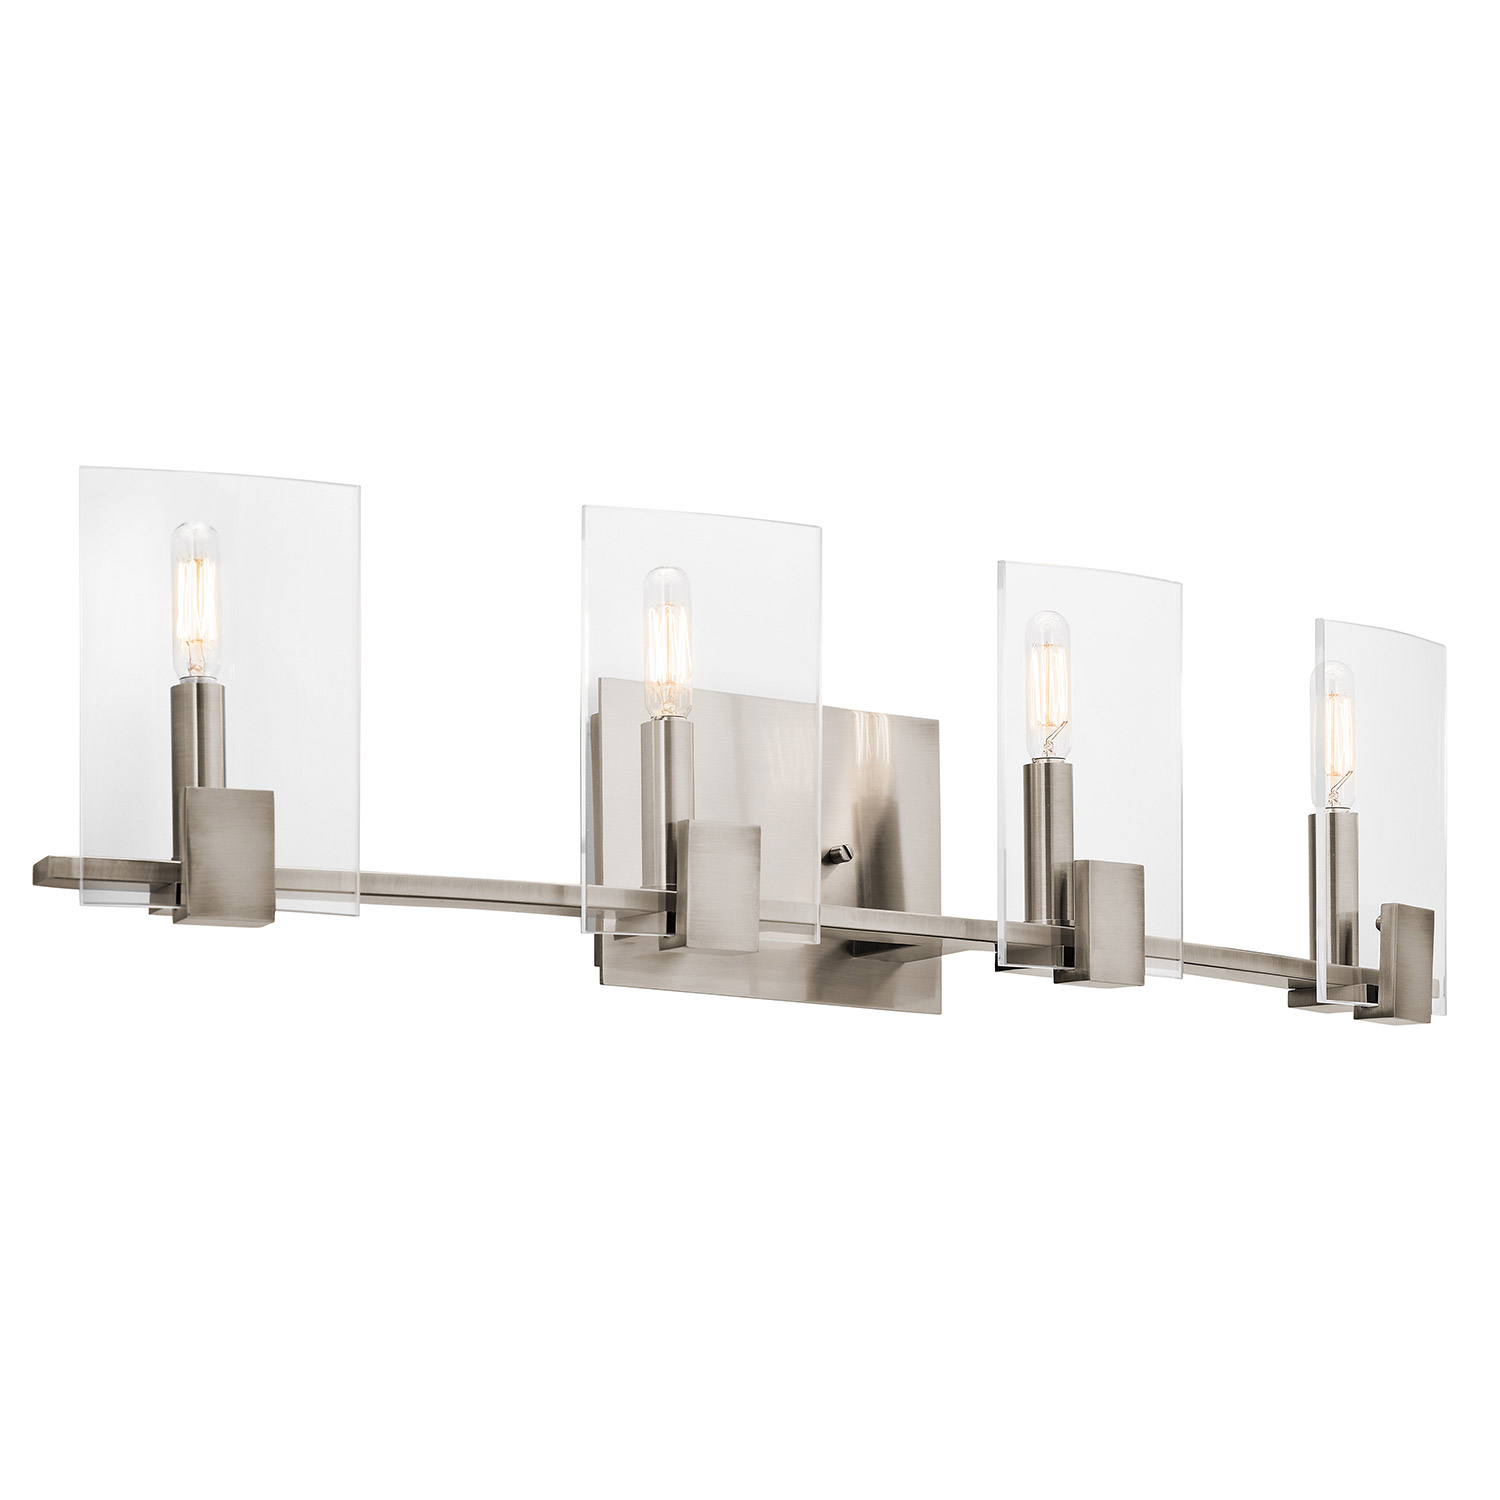 Vanity Lights Kichler : Kichler 45704CLP Signata Bathroom Vanity Light